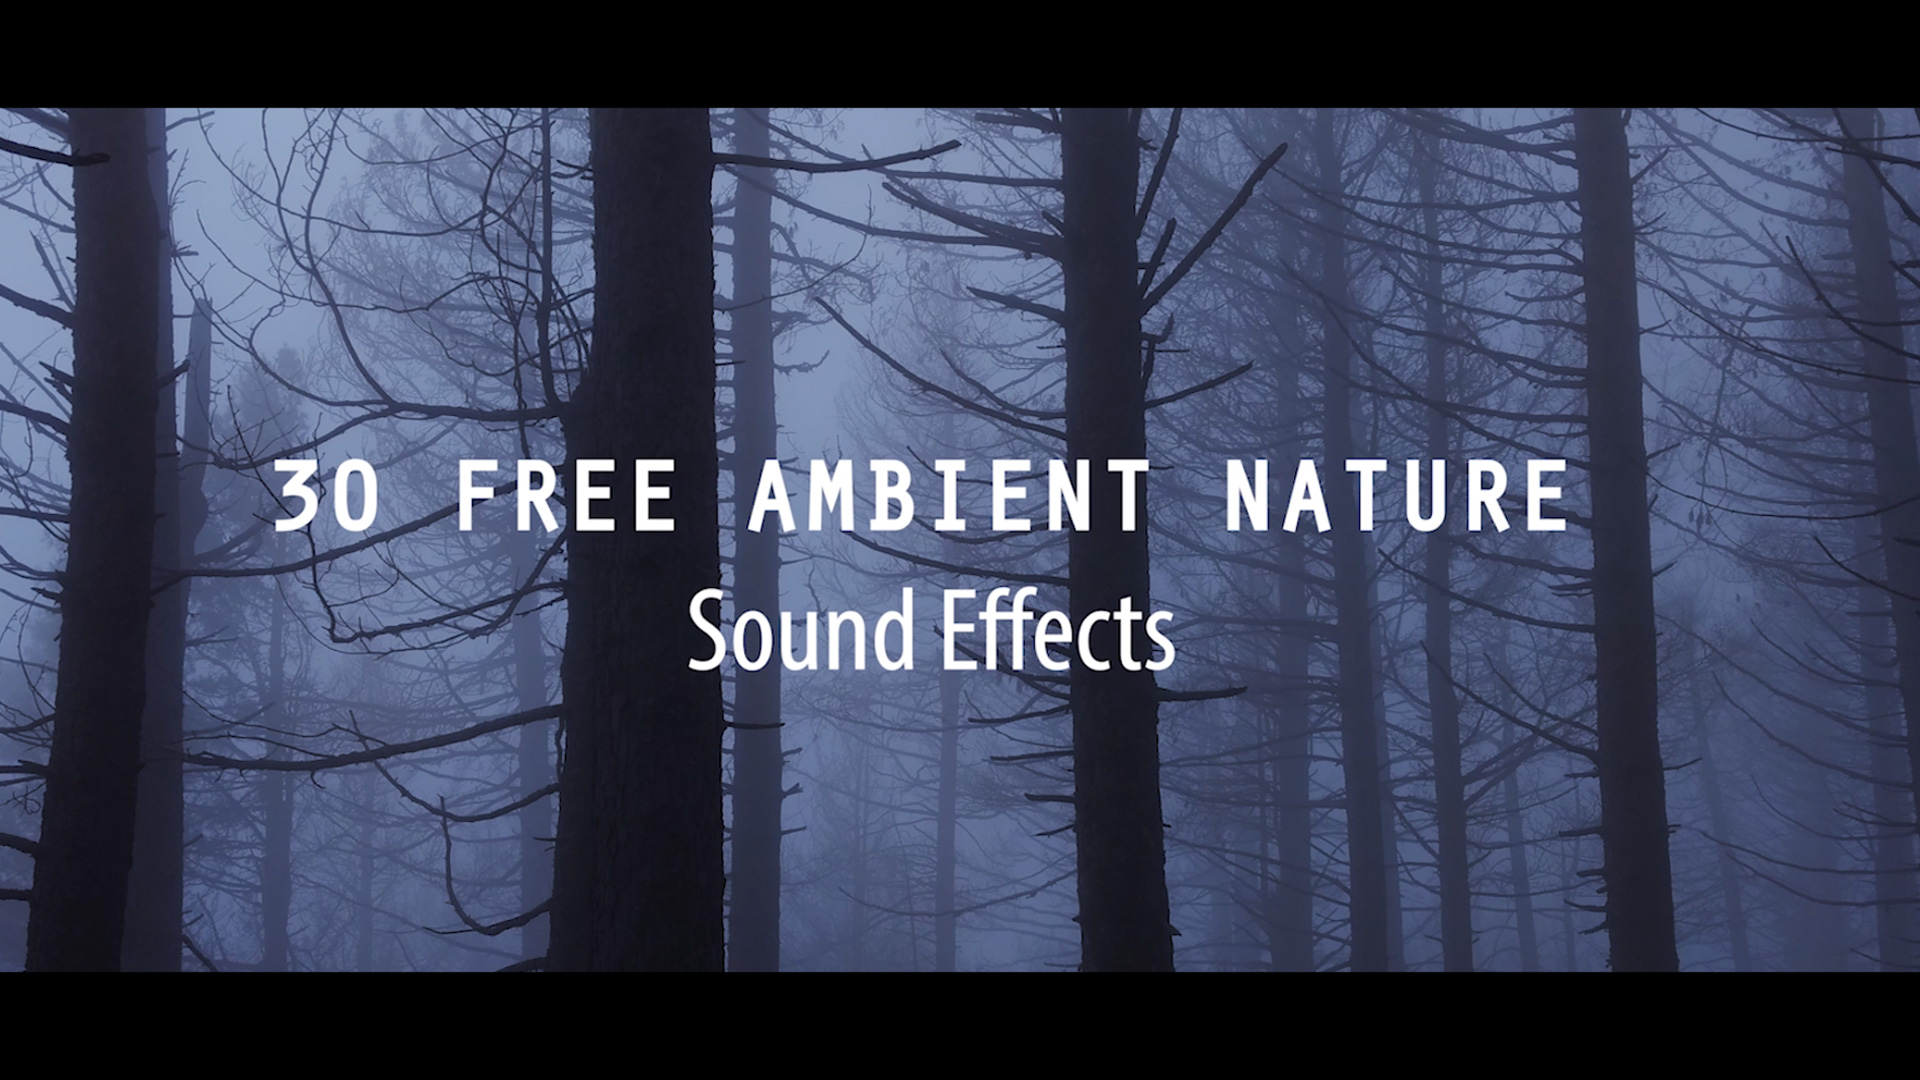 Download 30 FREE Ambient Nature Sounds Effect